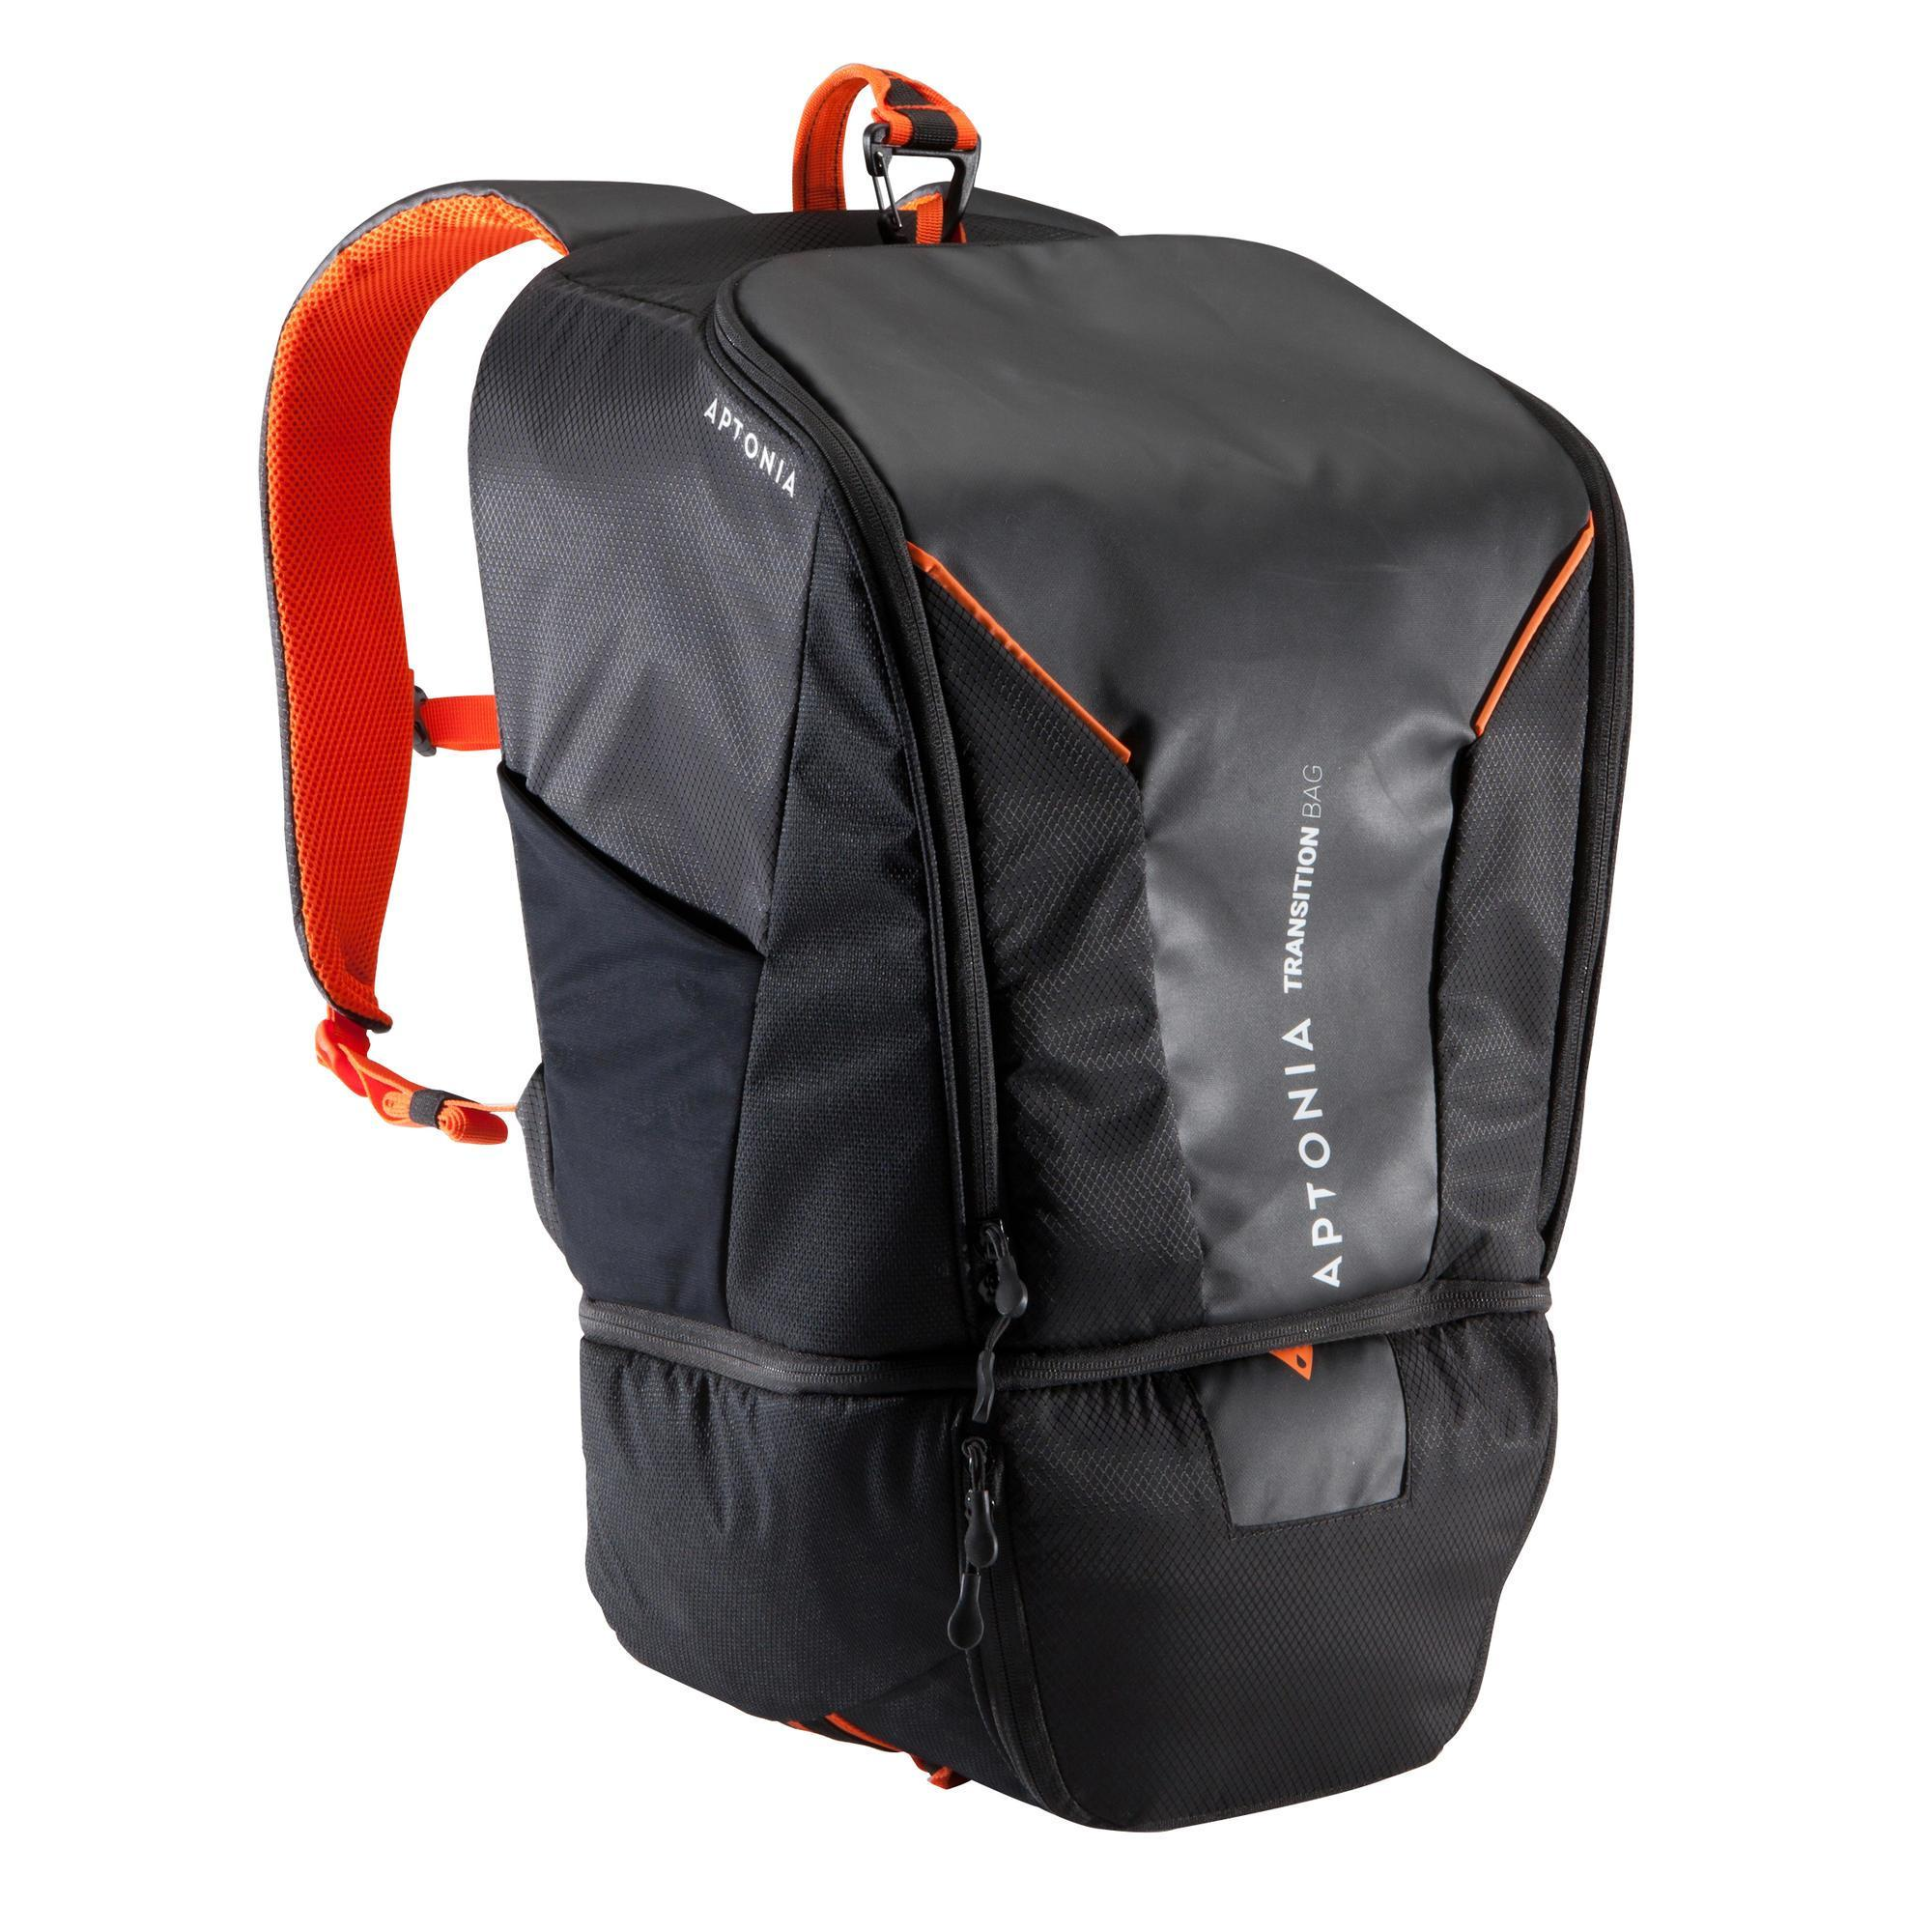 Aptonia Triathlon Transition Bag